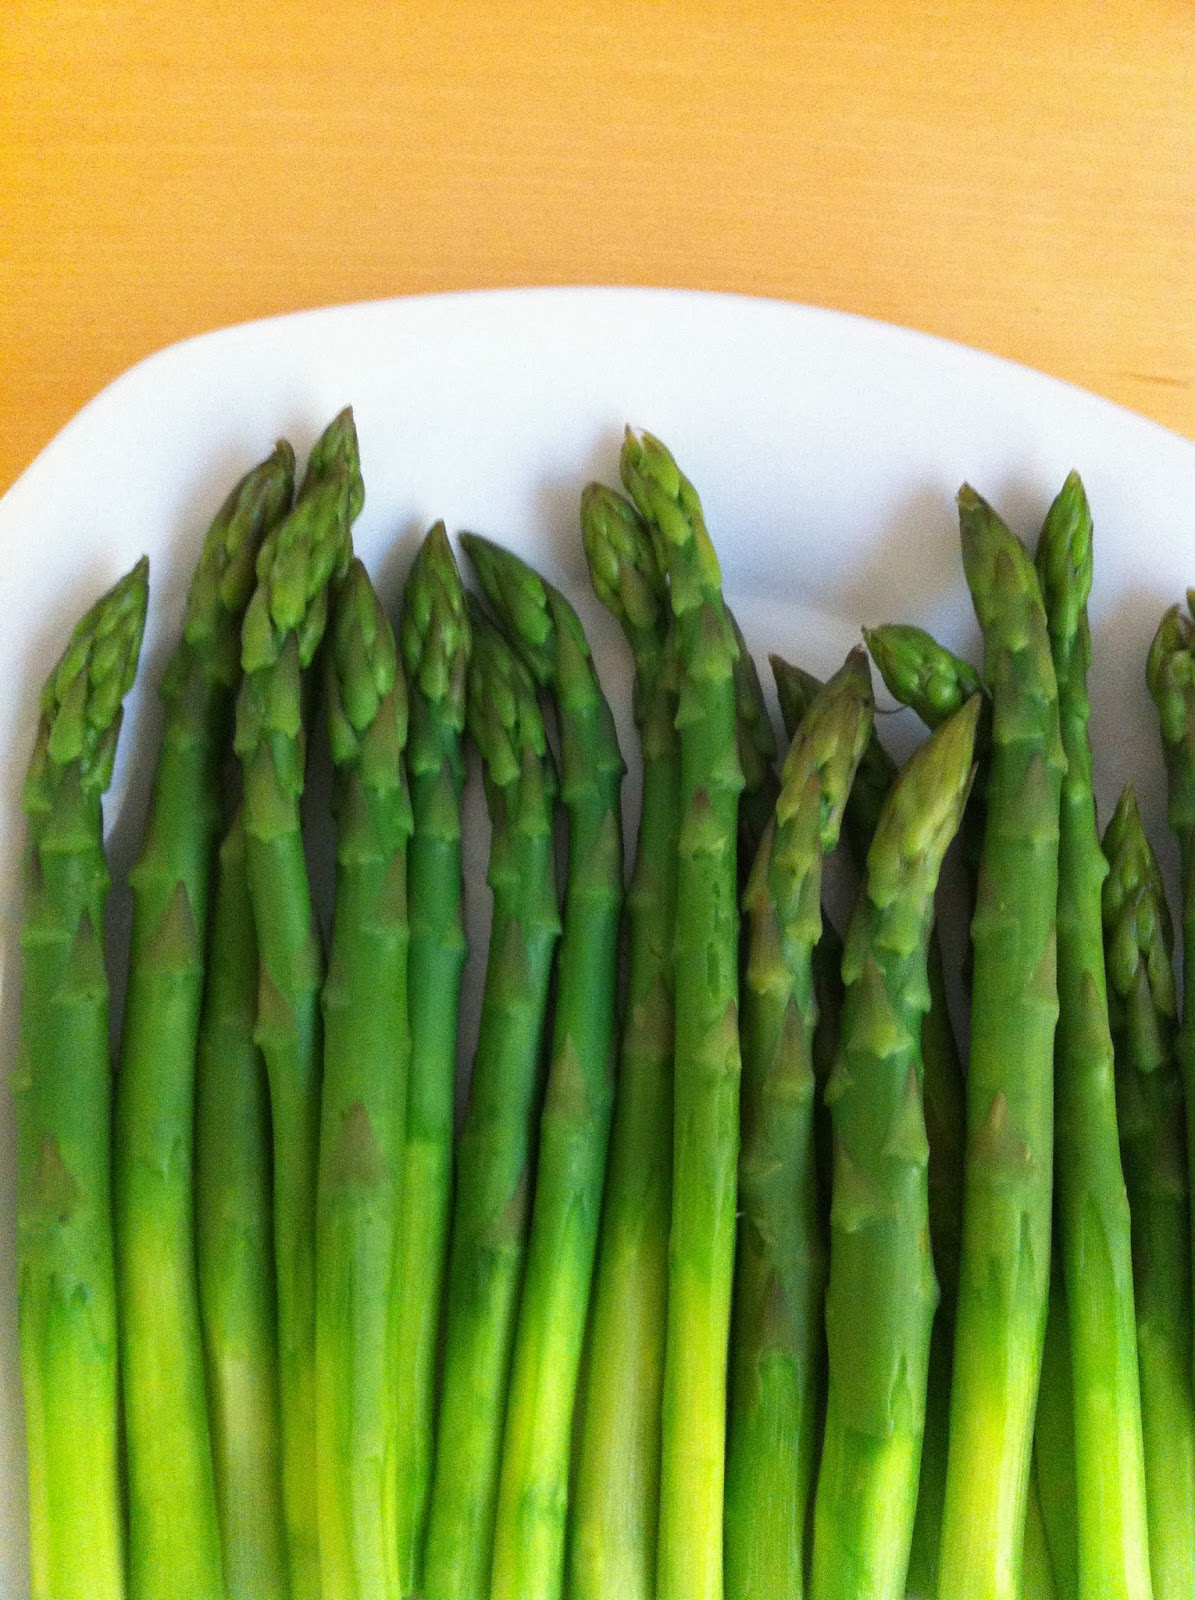 cooked and plated asparagus stalks